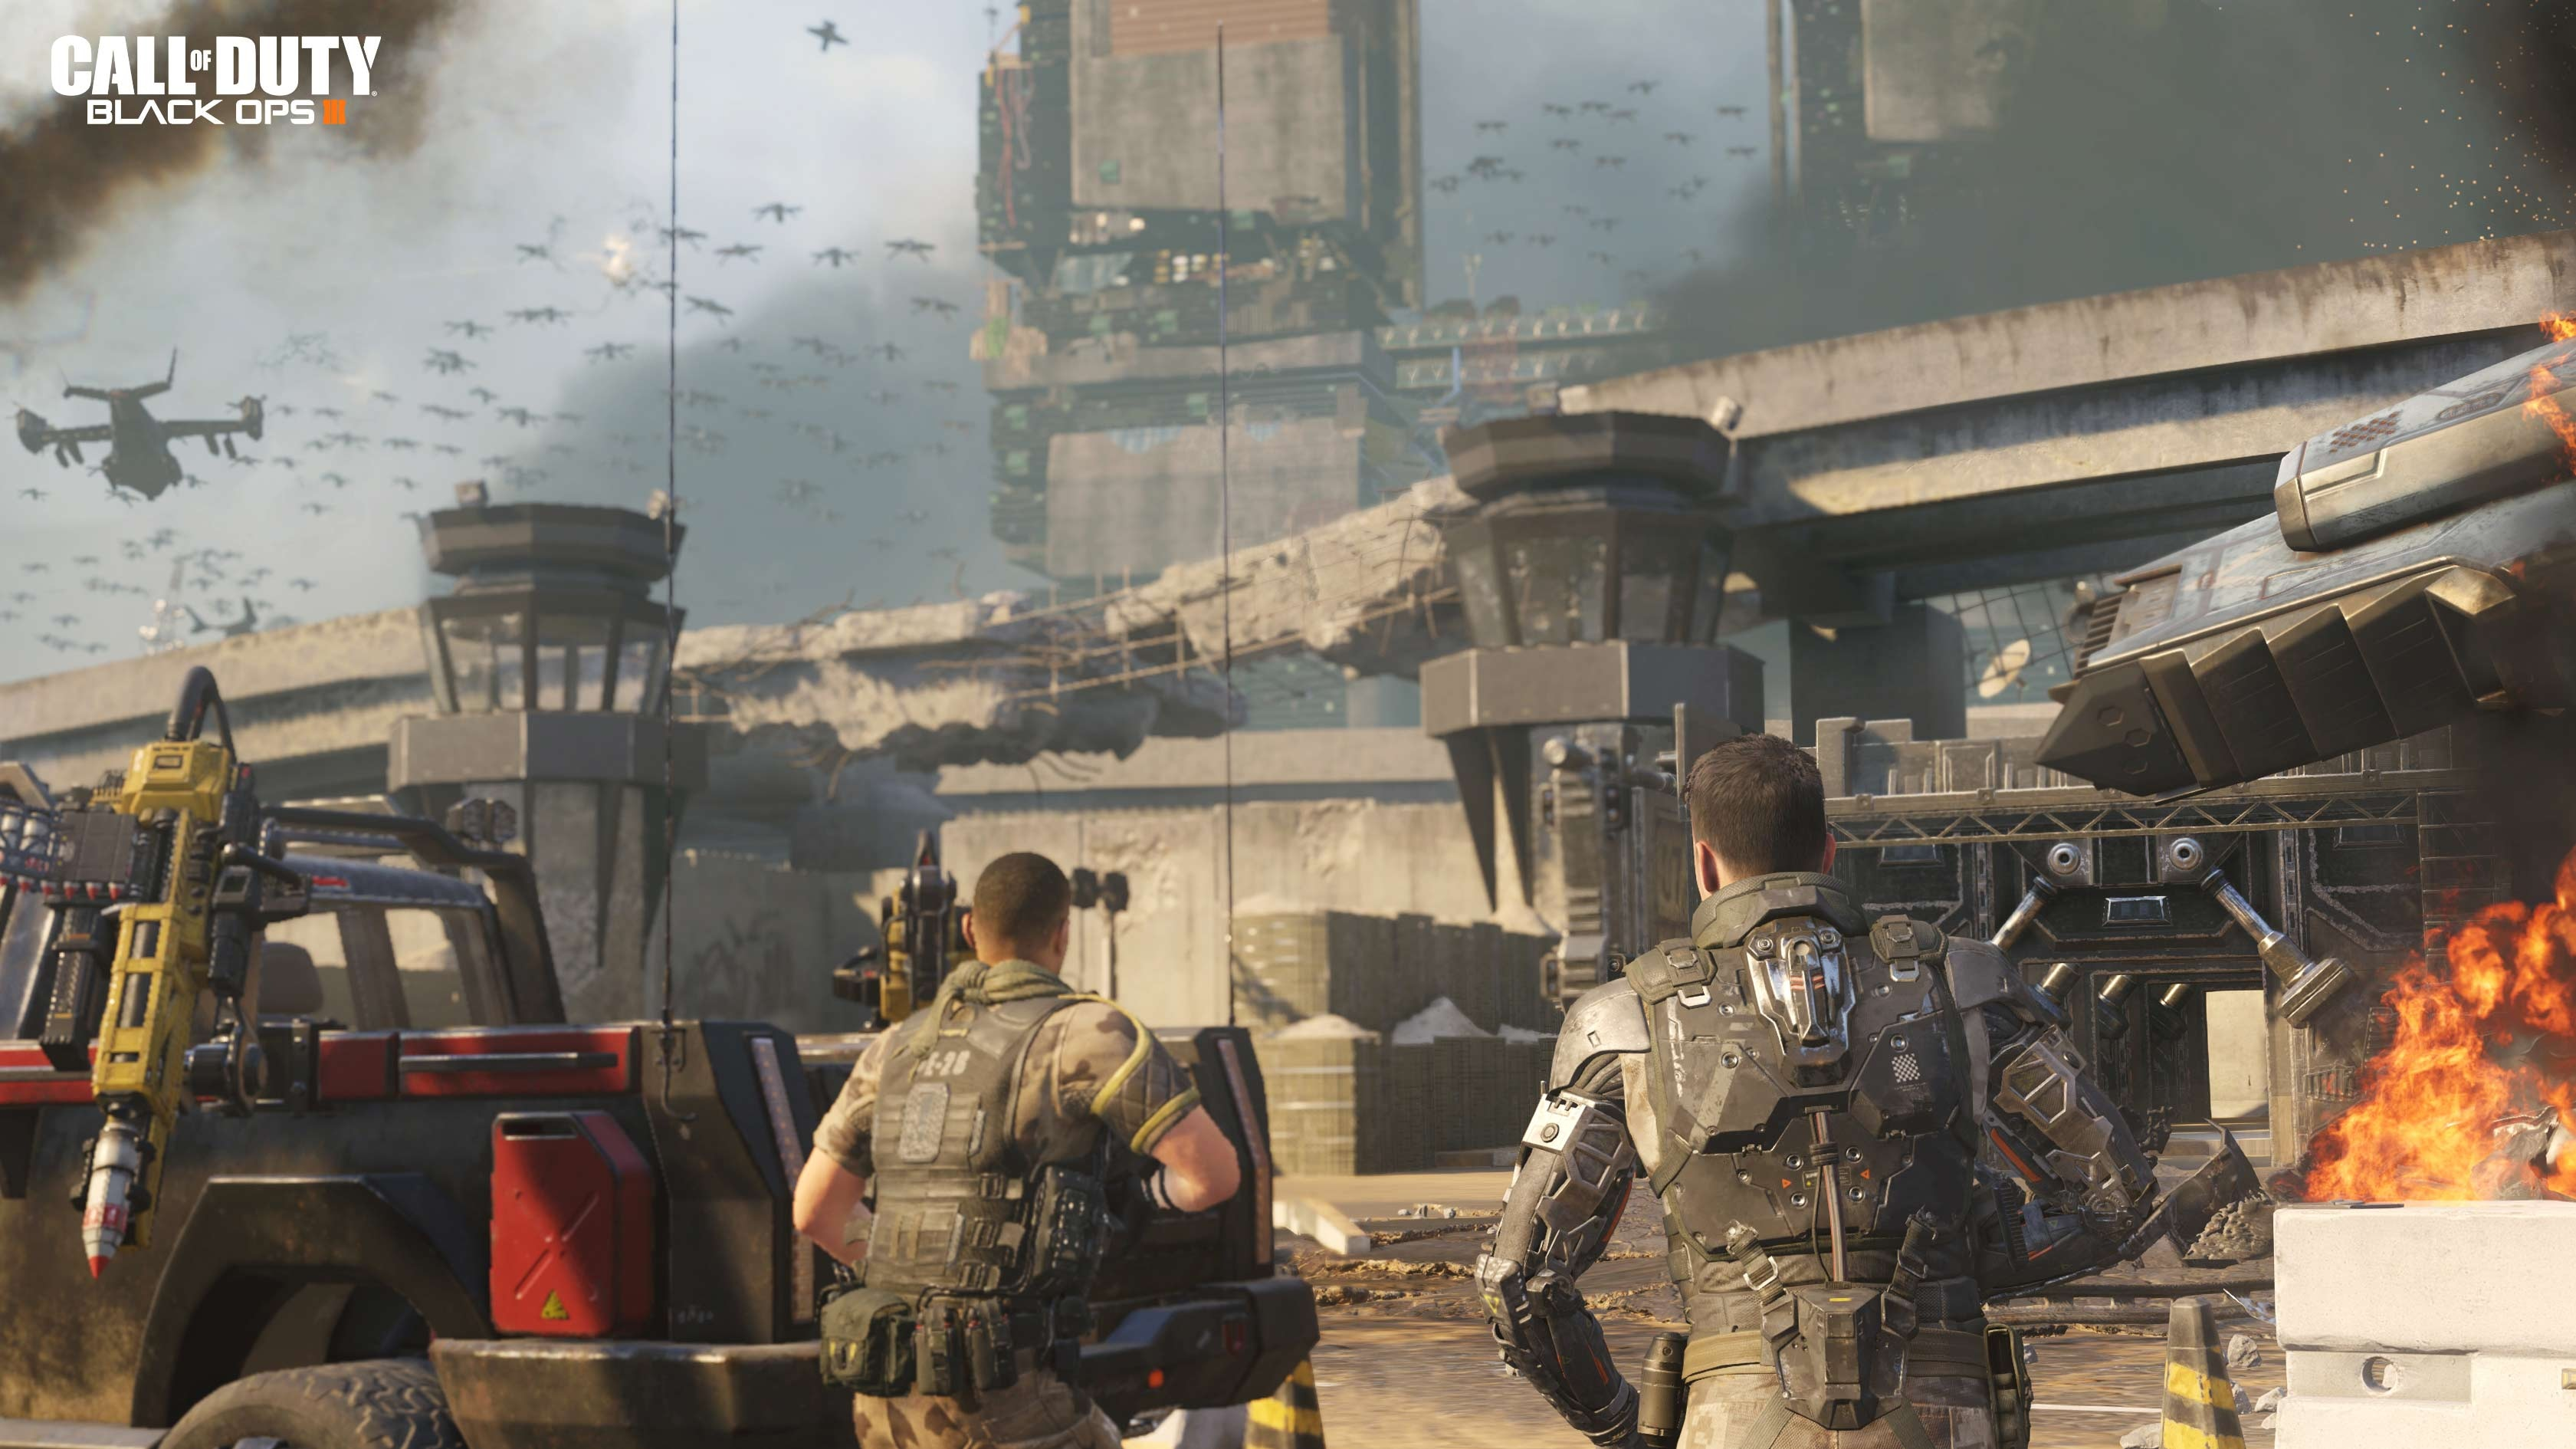 Call of Duty Black Ops 38